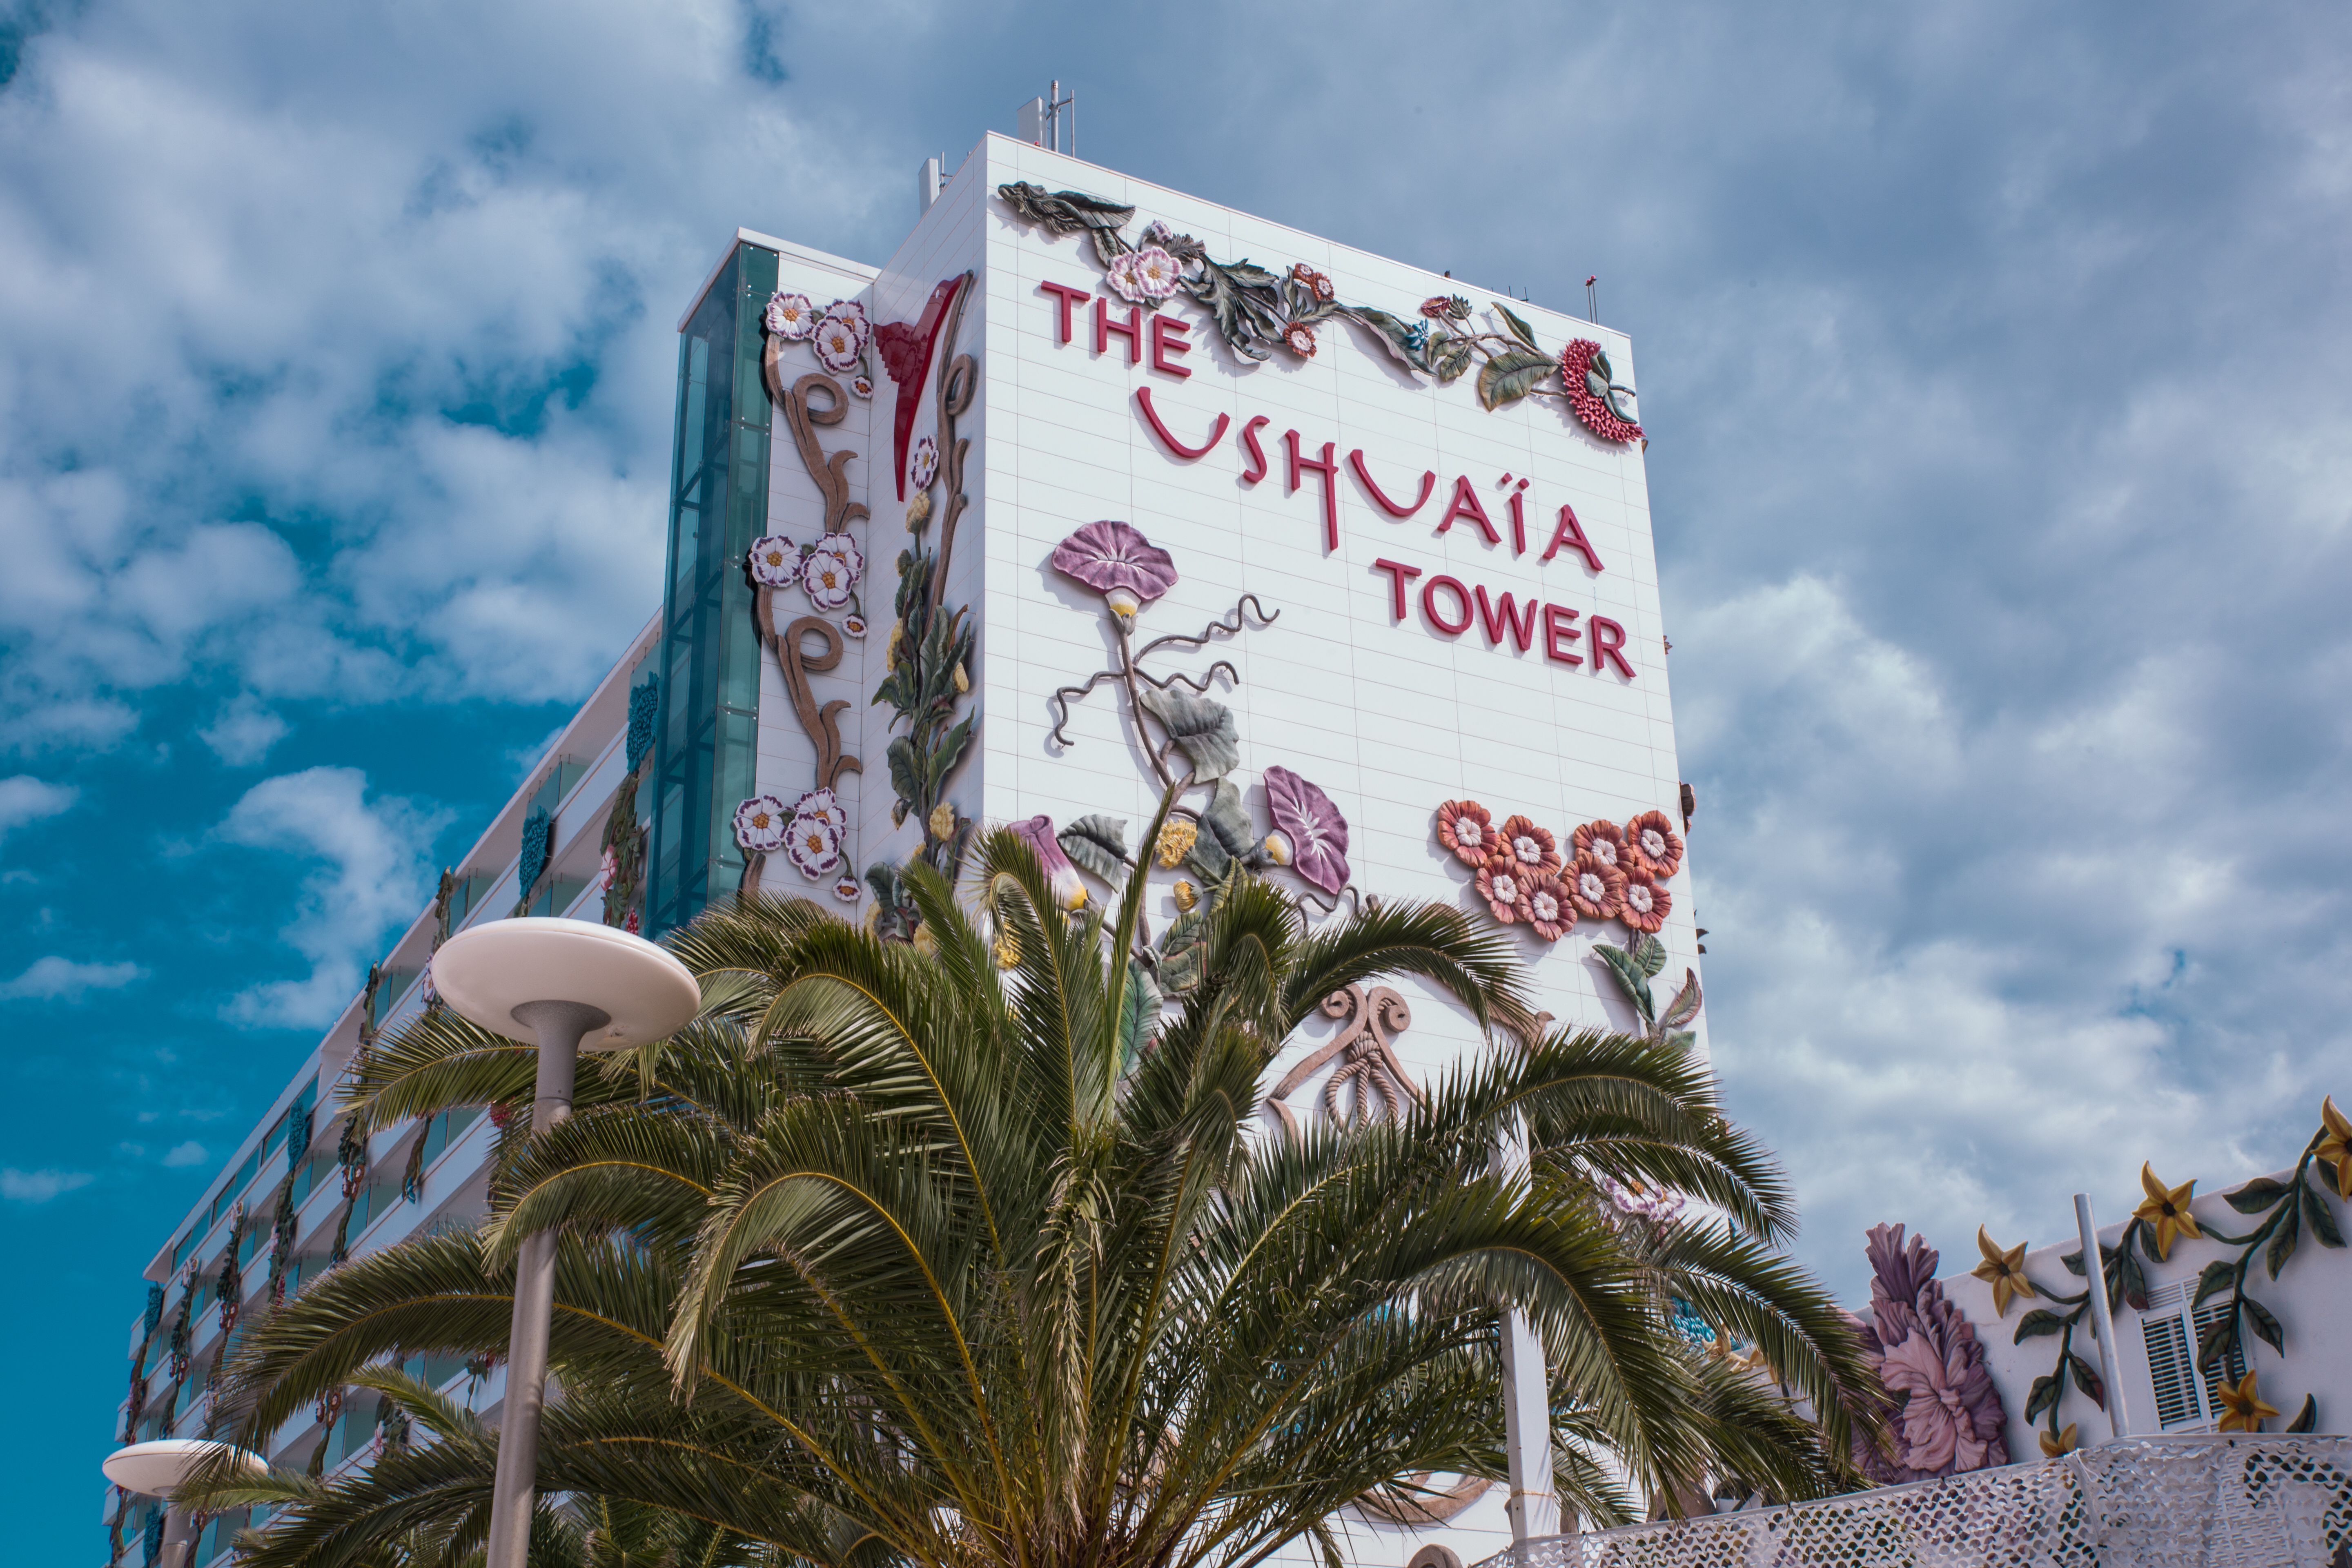 The Ushuaia Tower